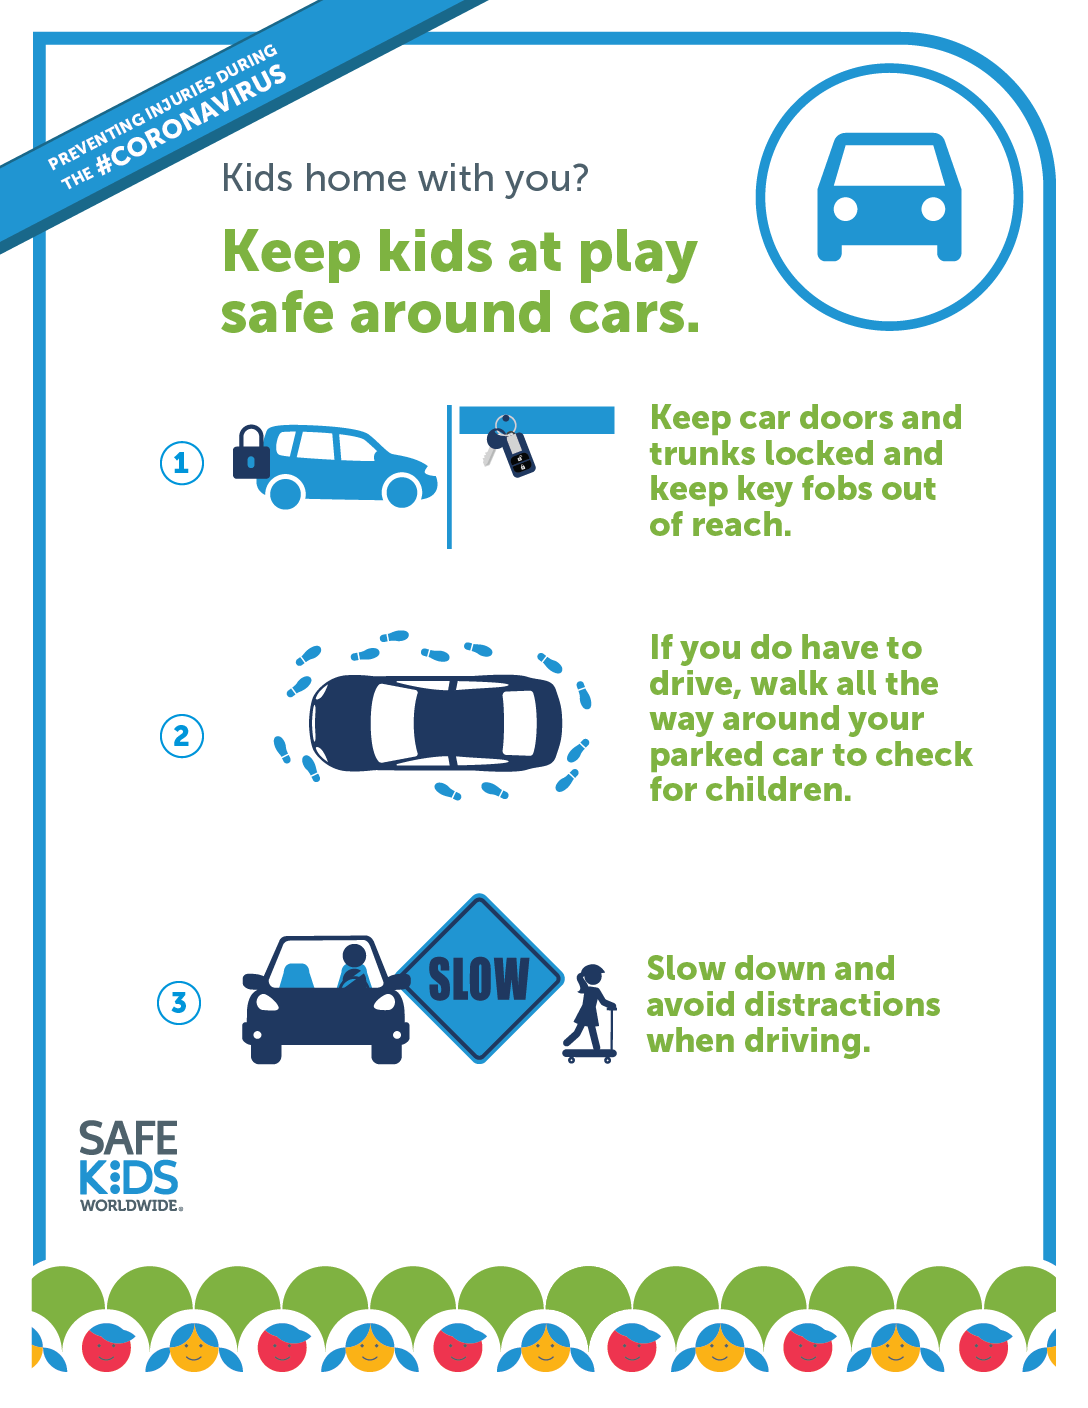 Safety in and around cars